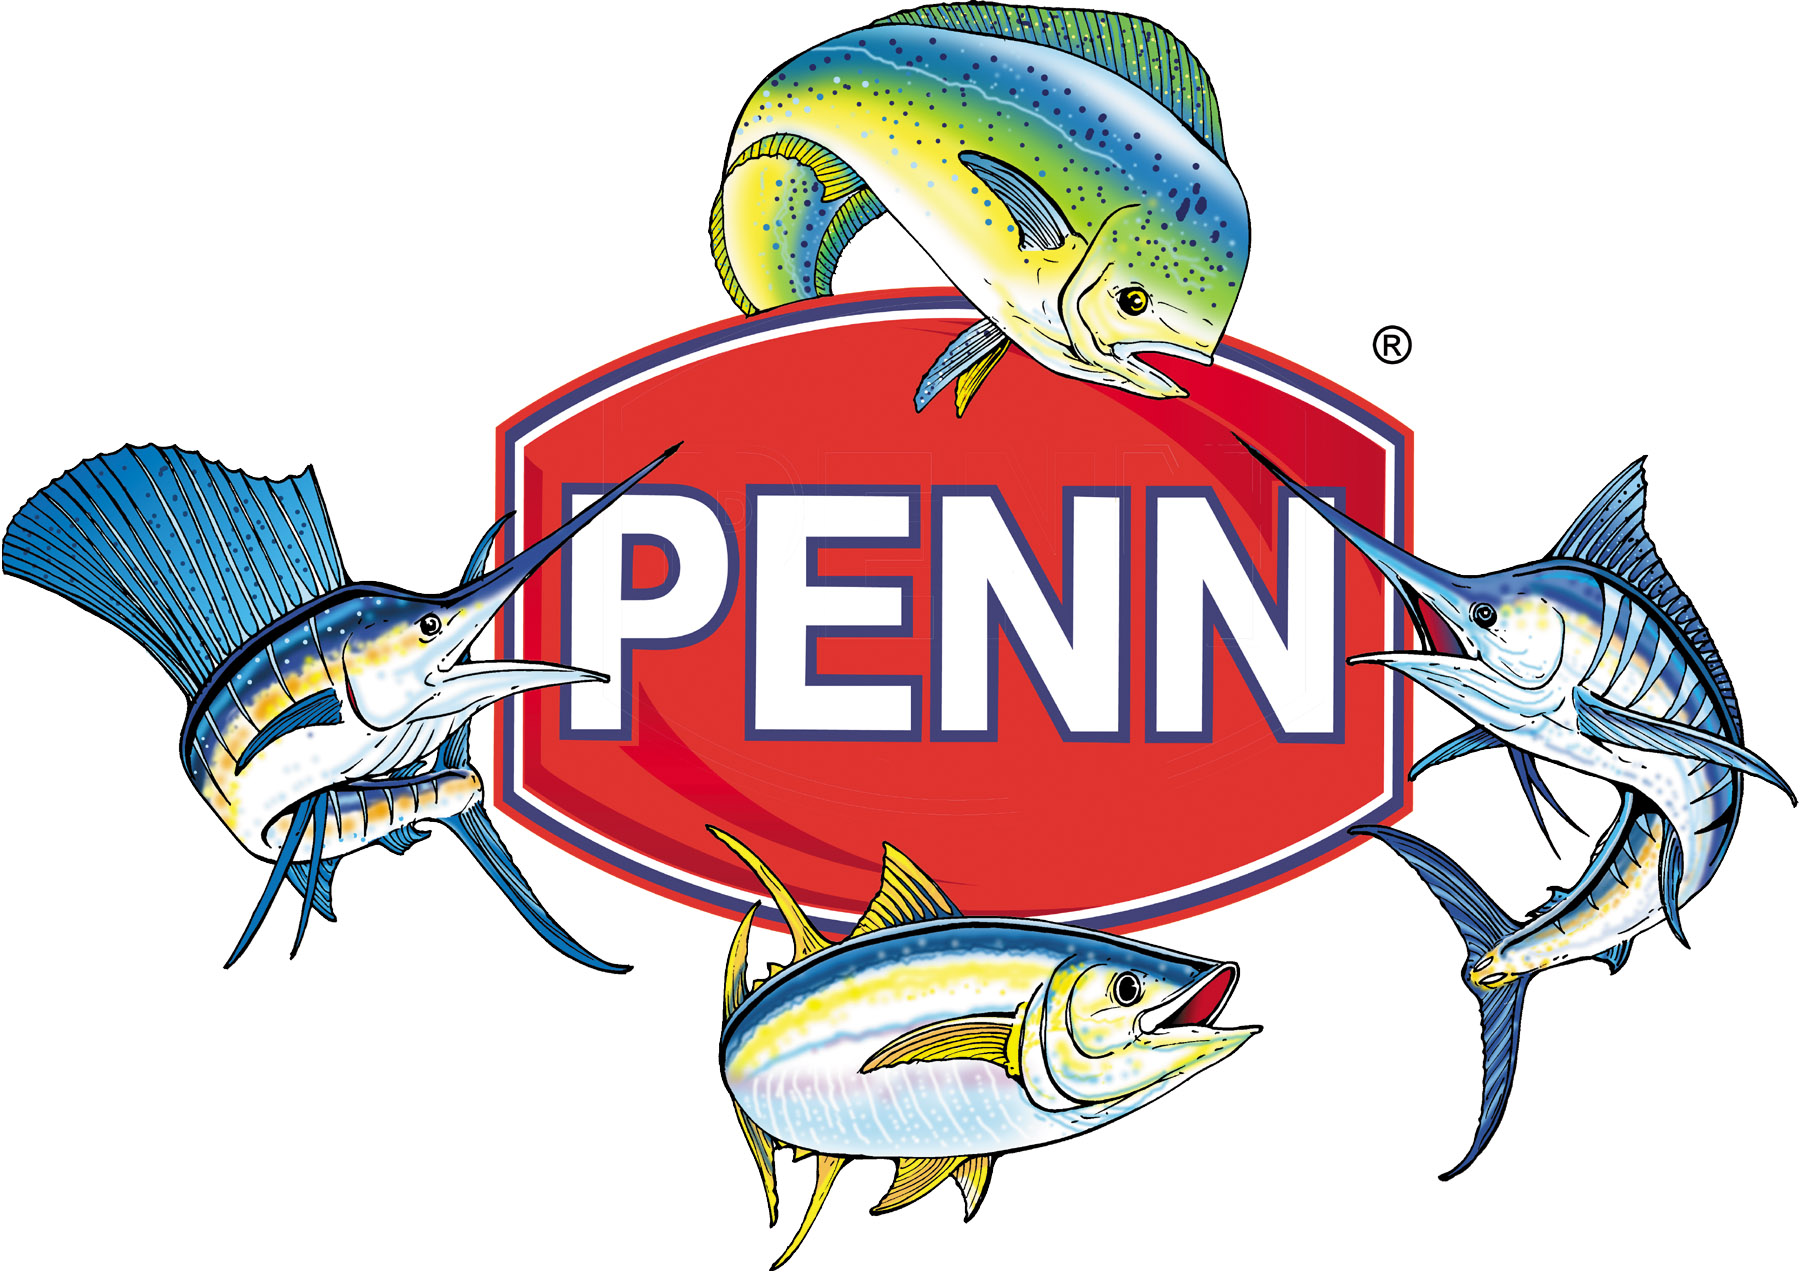 Penn Four Fish Logo